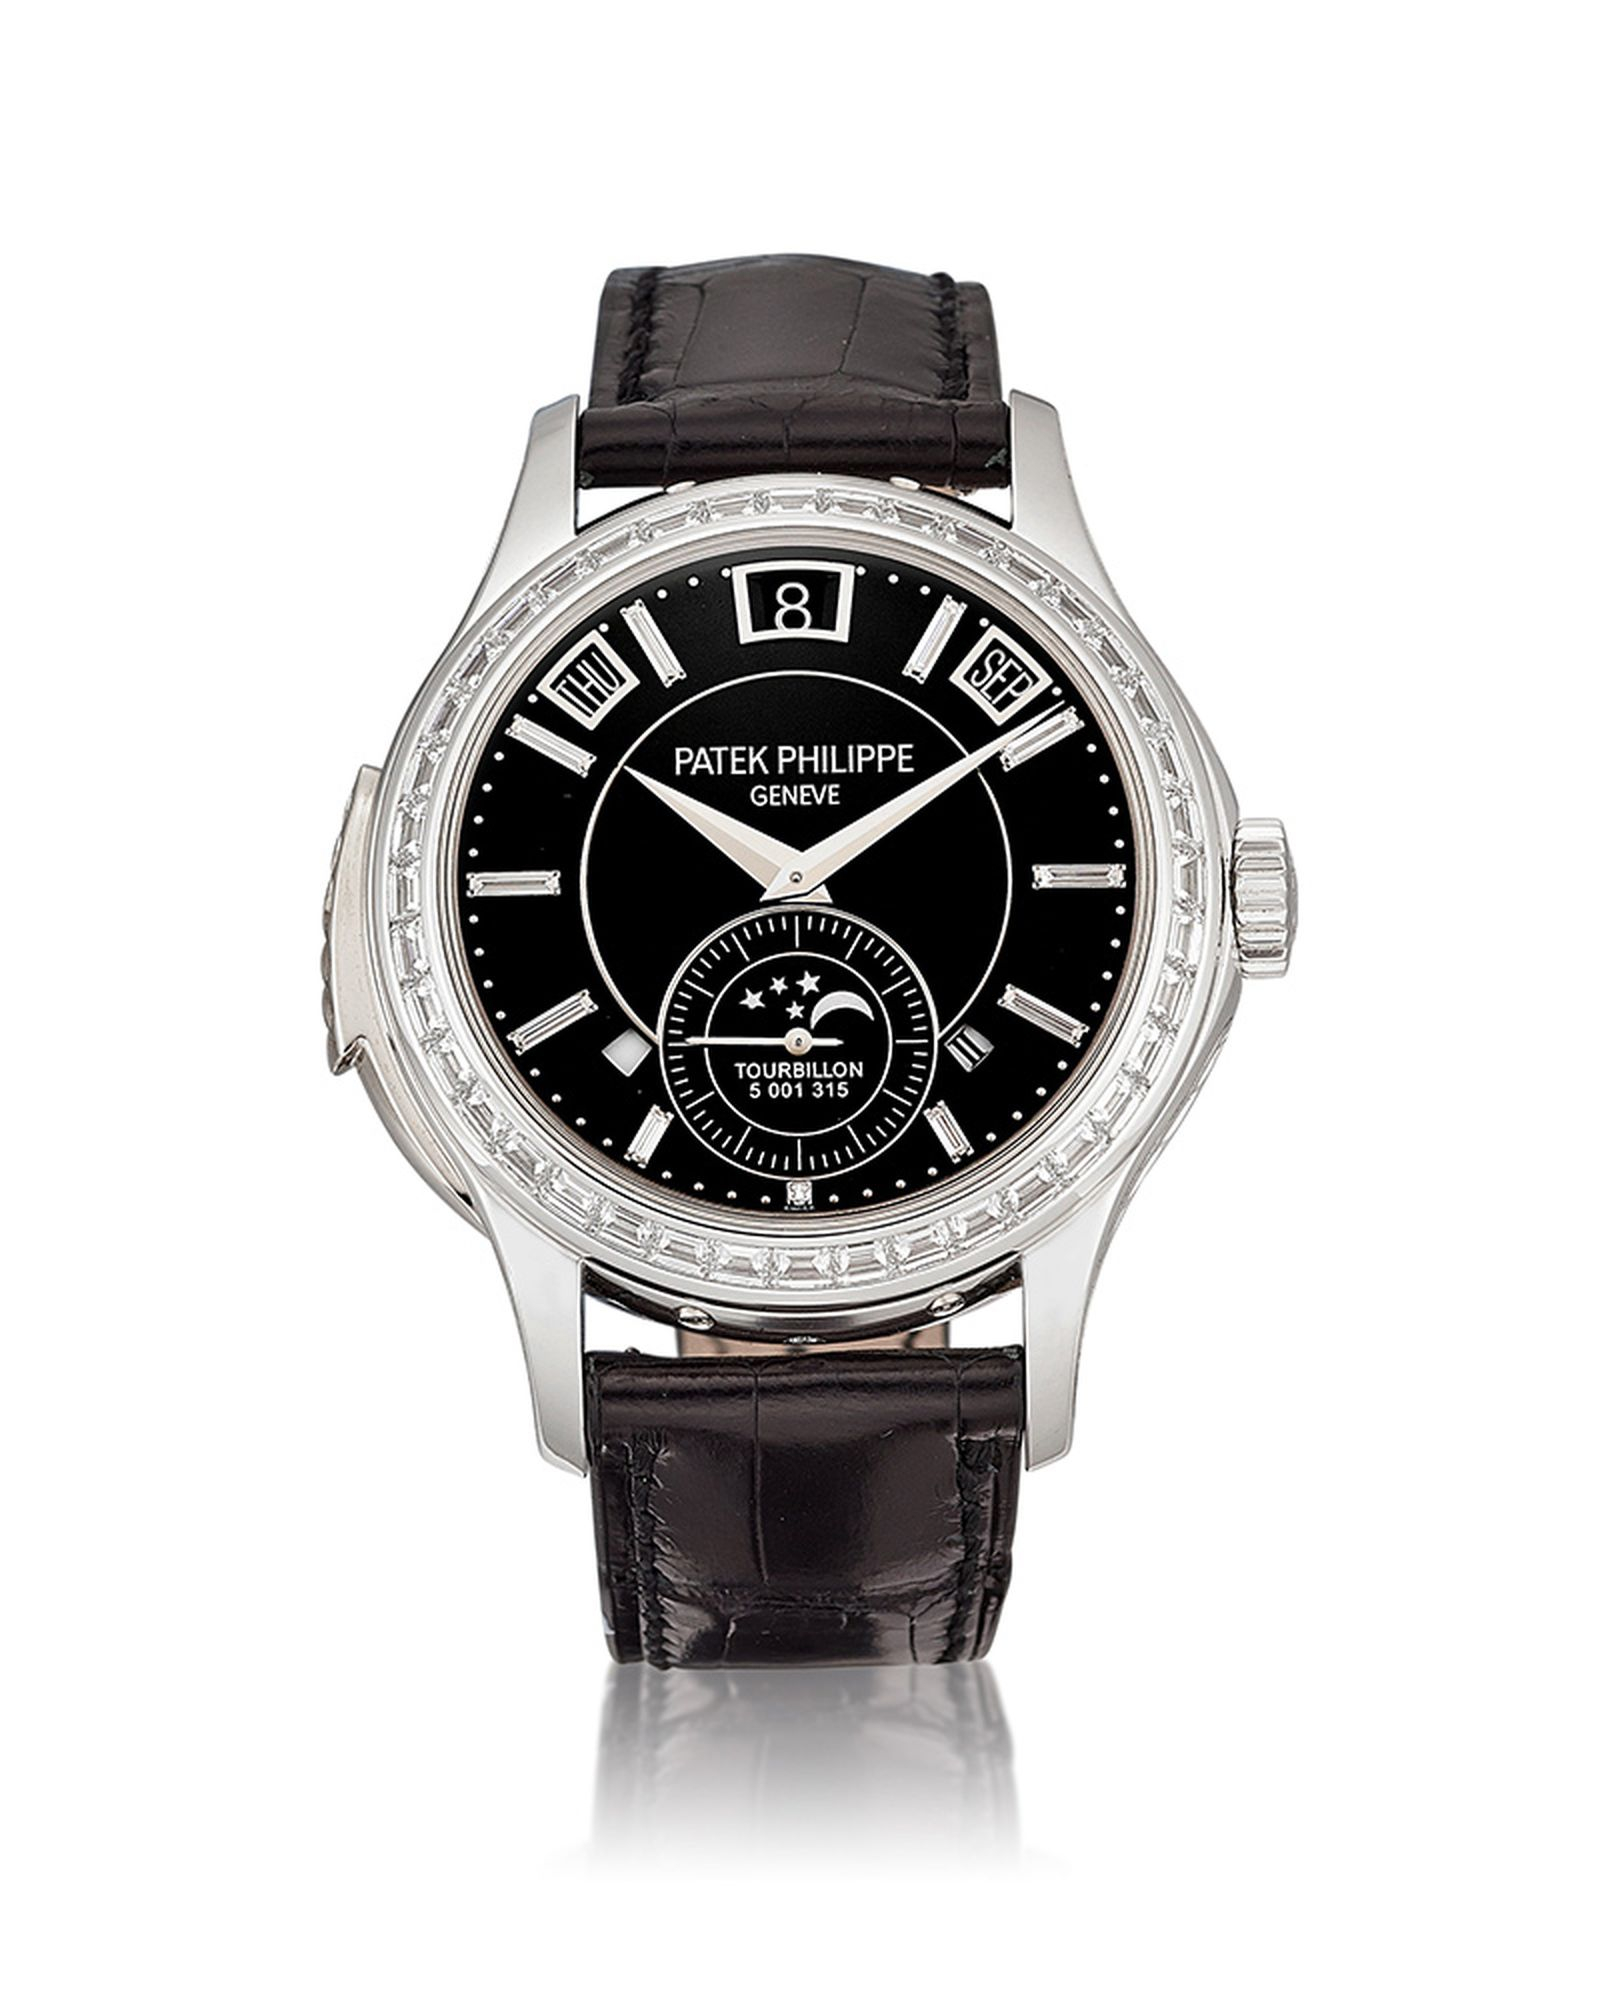 sothebys-hong-kong-important-watch-auction-04